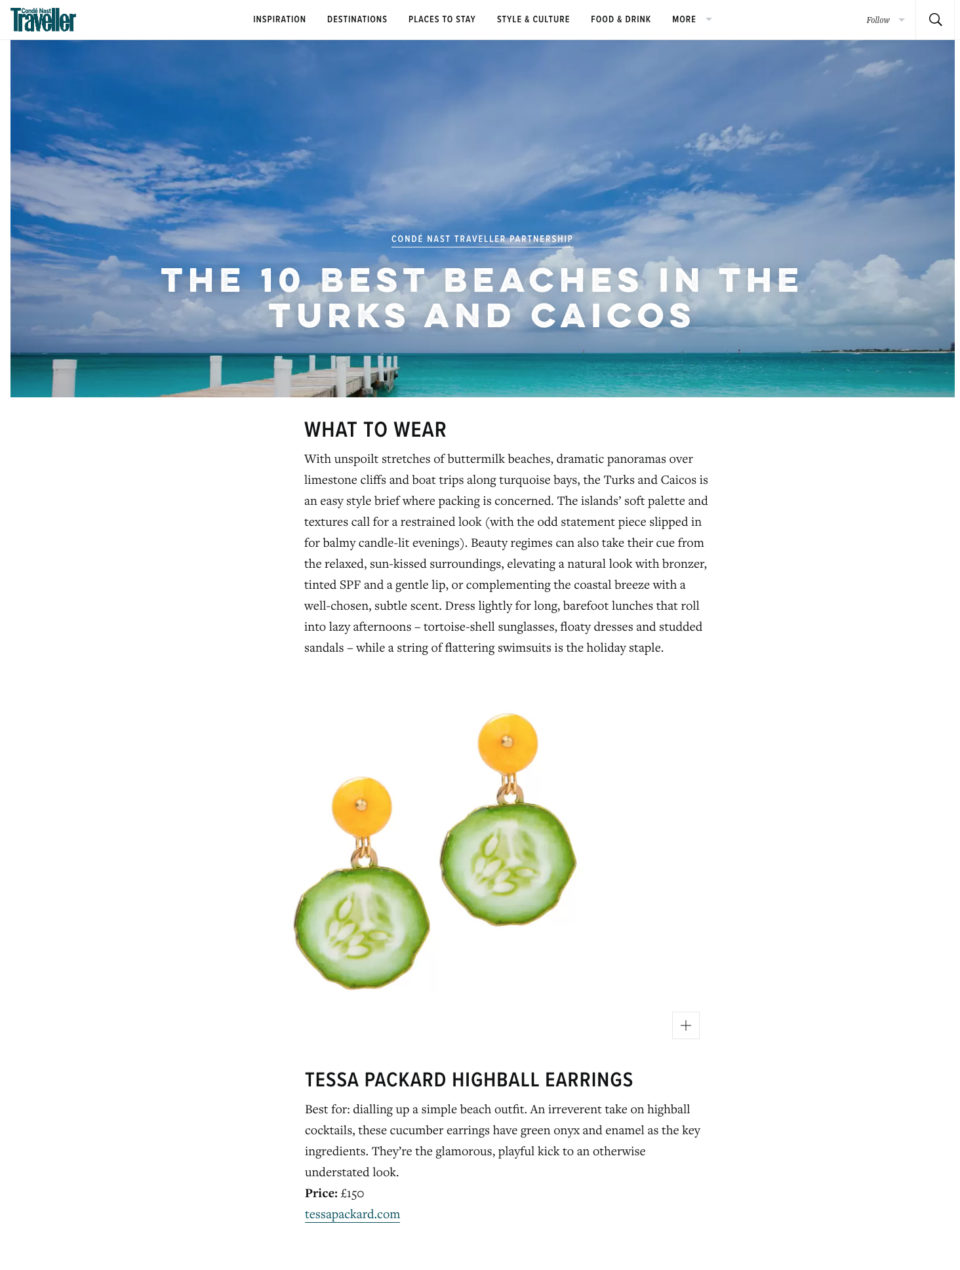 Conde Nast Traveller What to Wear featuring Tessa Packard cucumber earrings